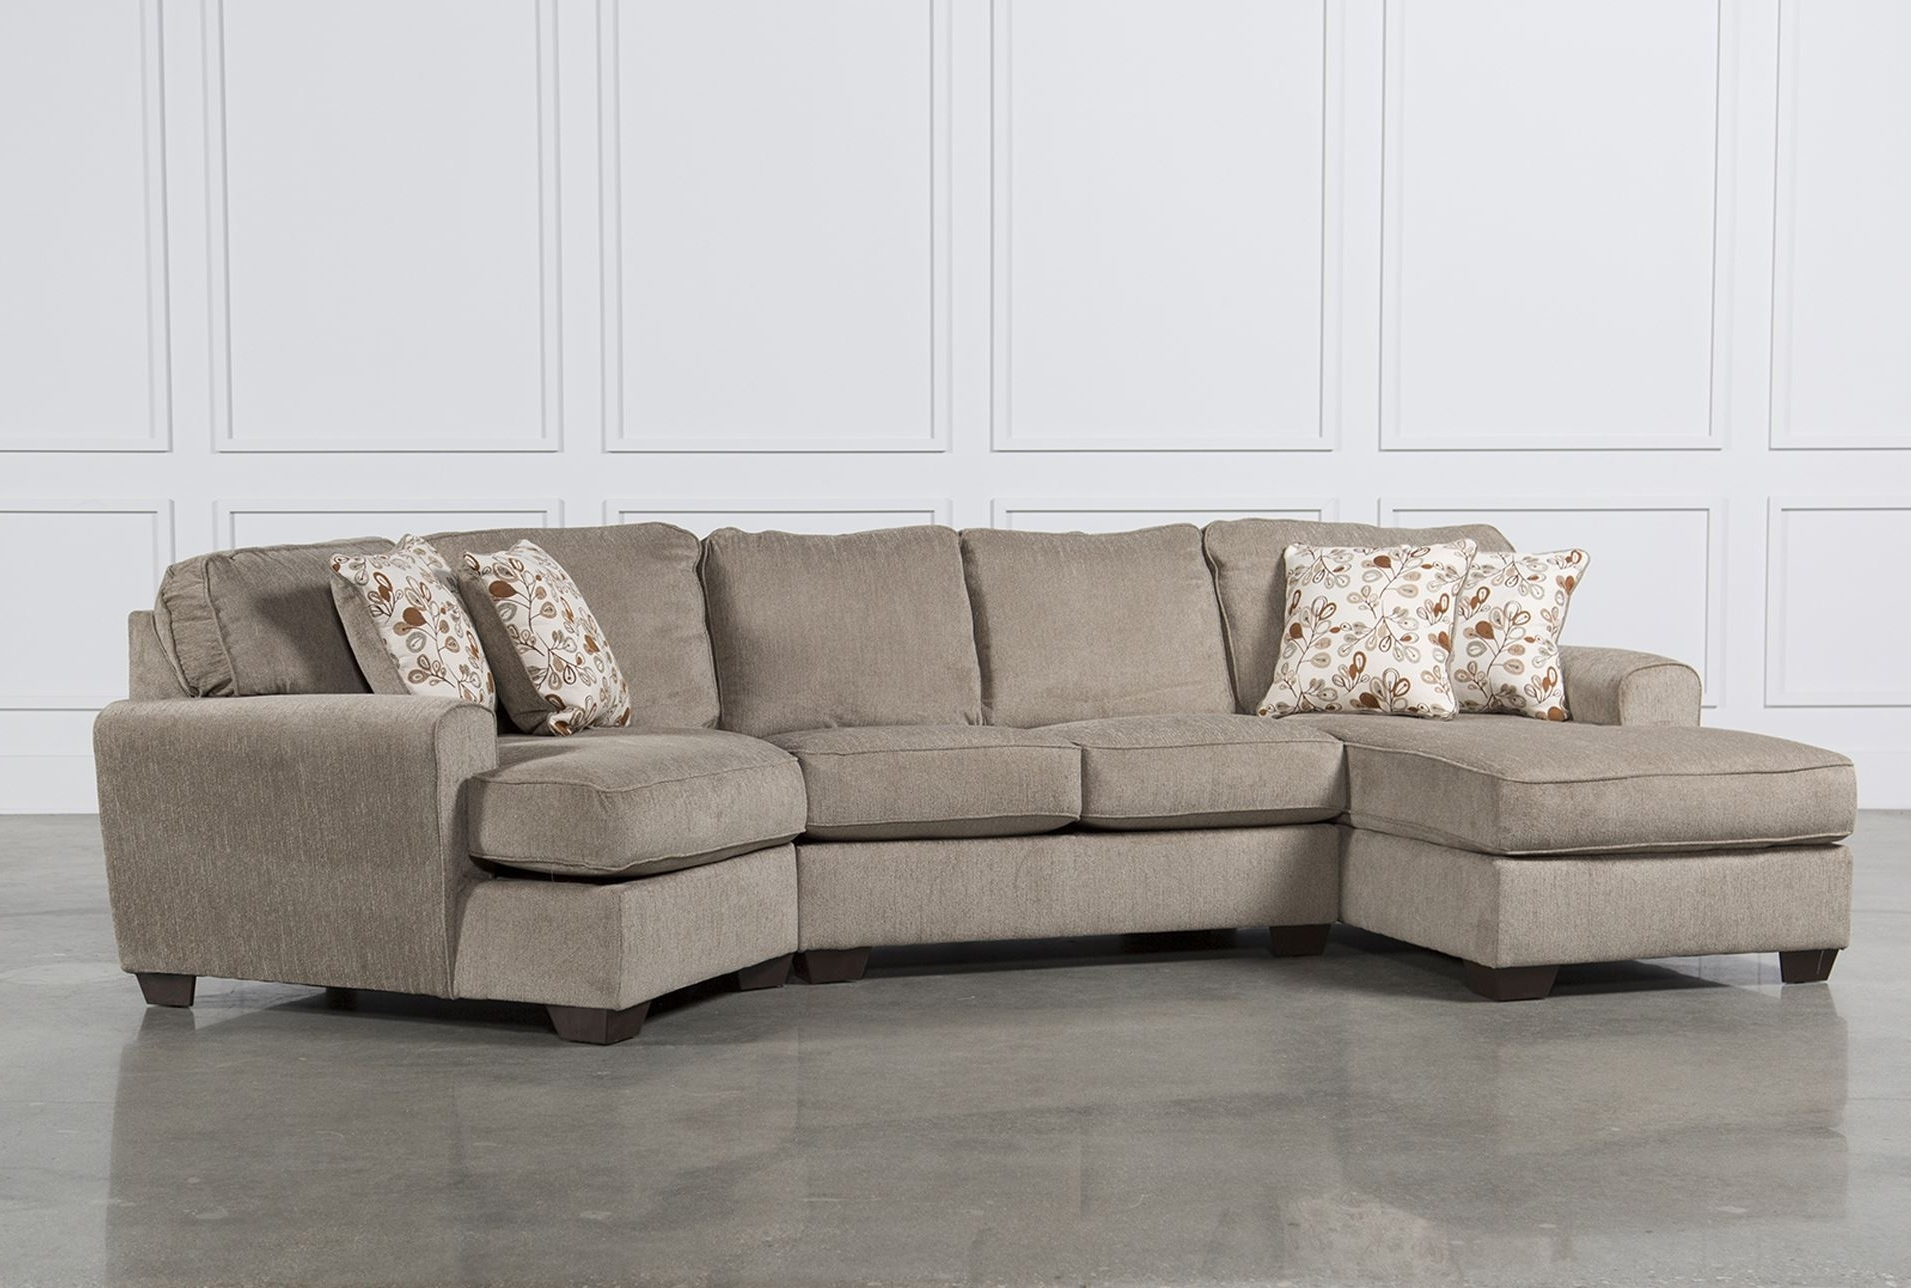 Sectional Sofas With Cuddler Chaise With Popular Incredible Sectional Sofas With Chaise And Cuddler Sofa Regard To (View 3 of 20)